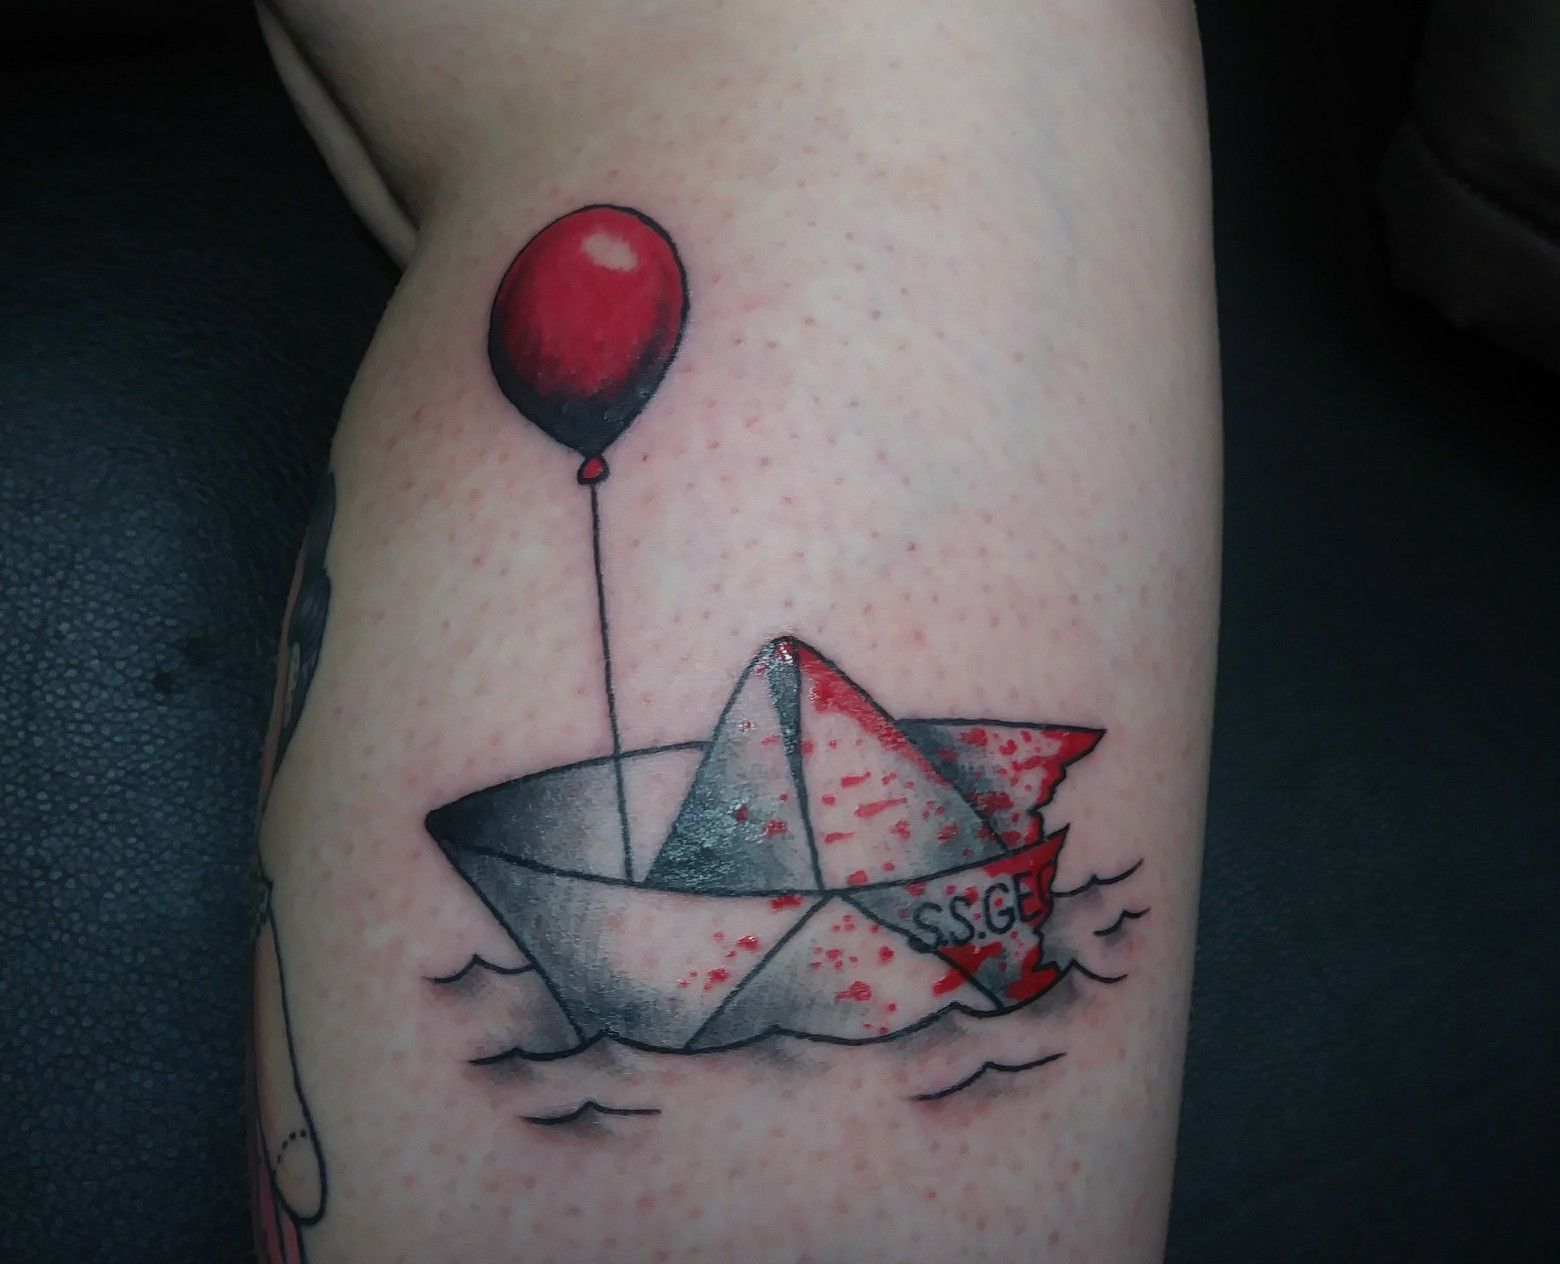 f8e2f7250 Stephen king it tattoo Georgie paper boat balloon pennywise ...